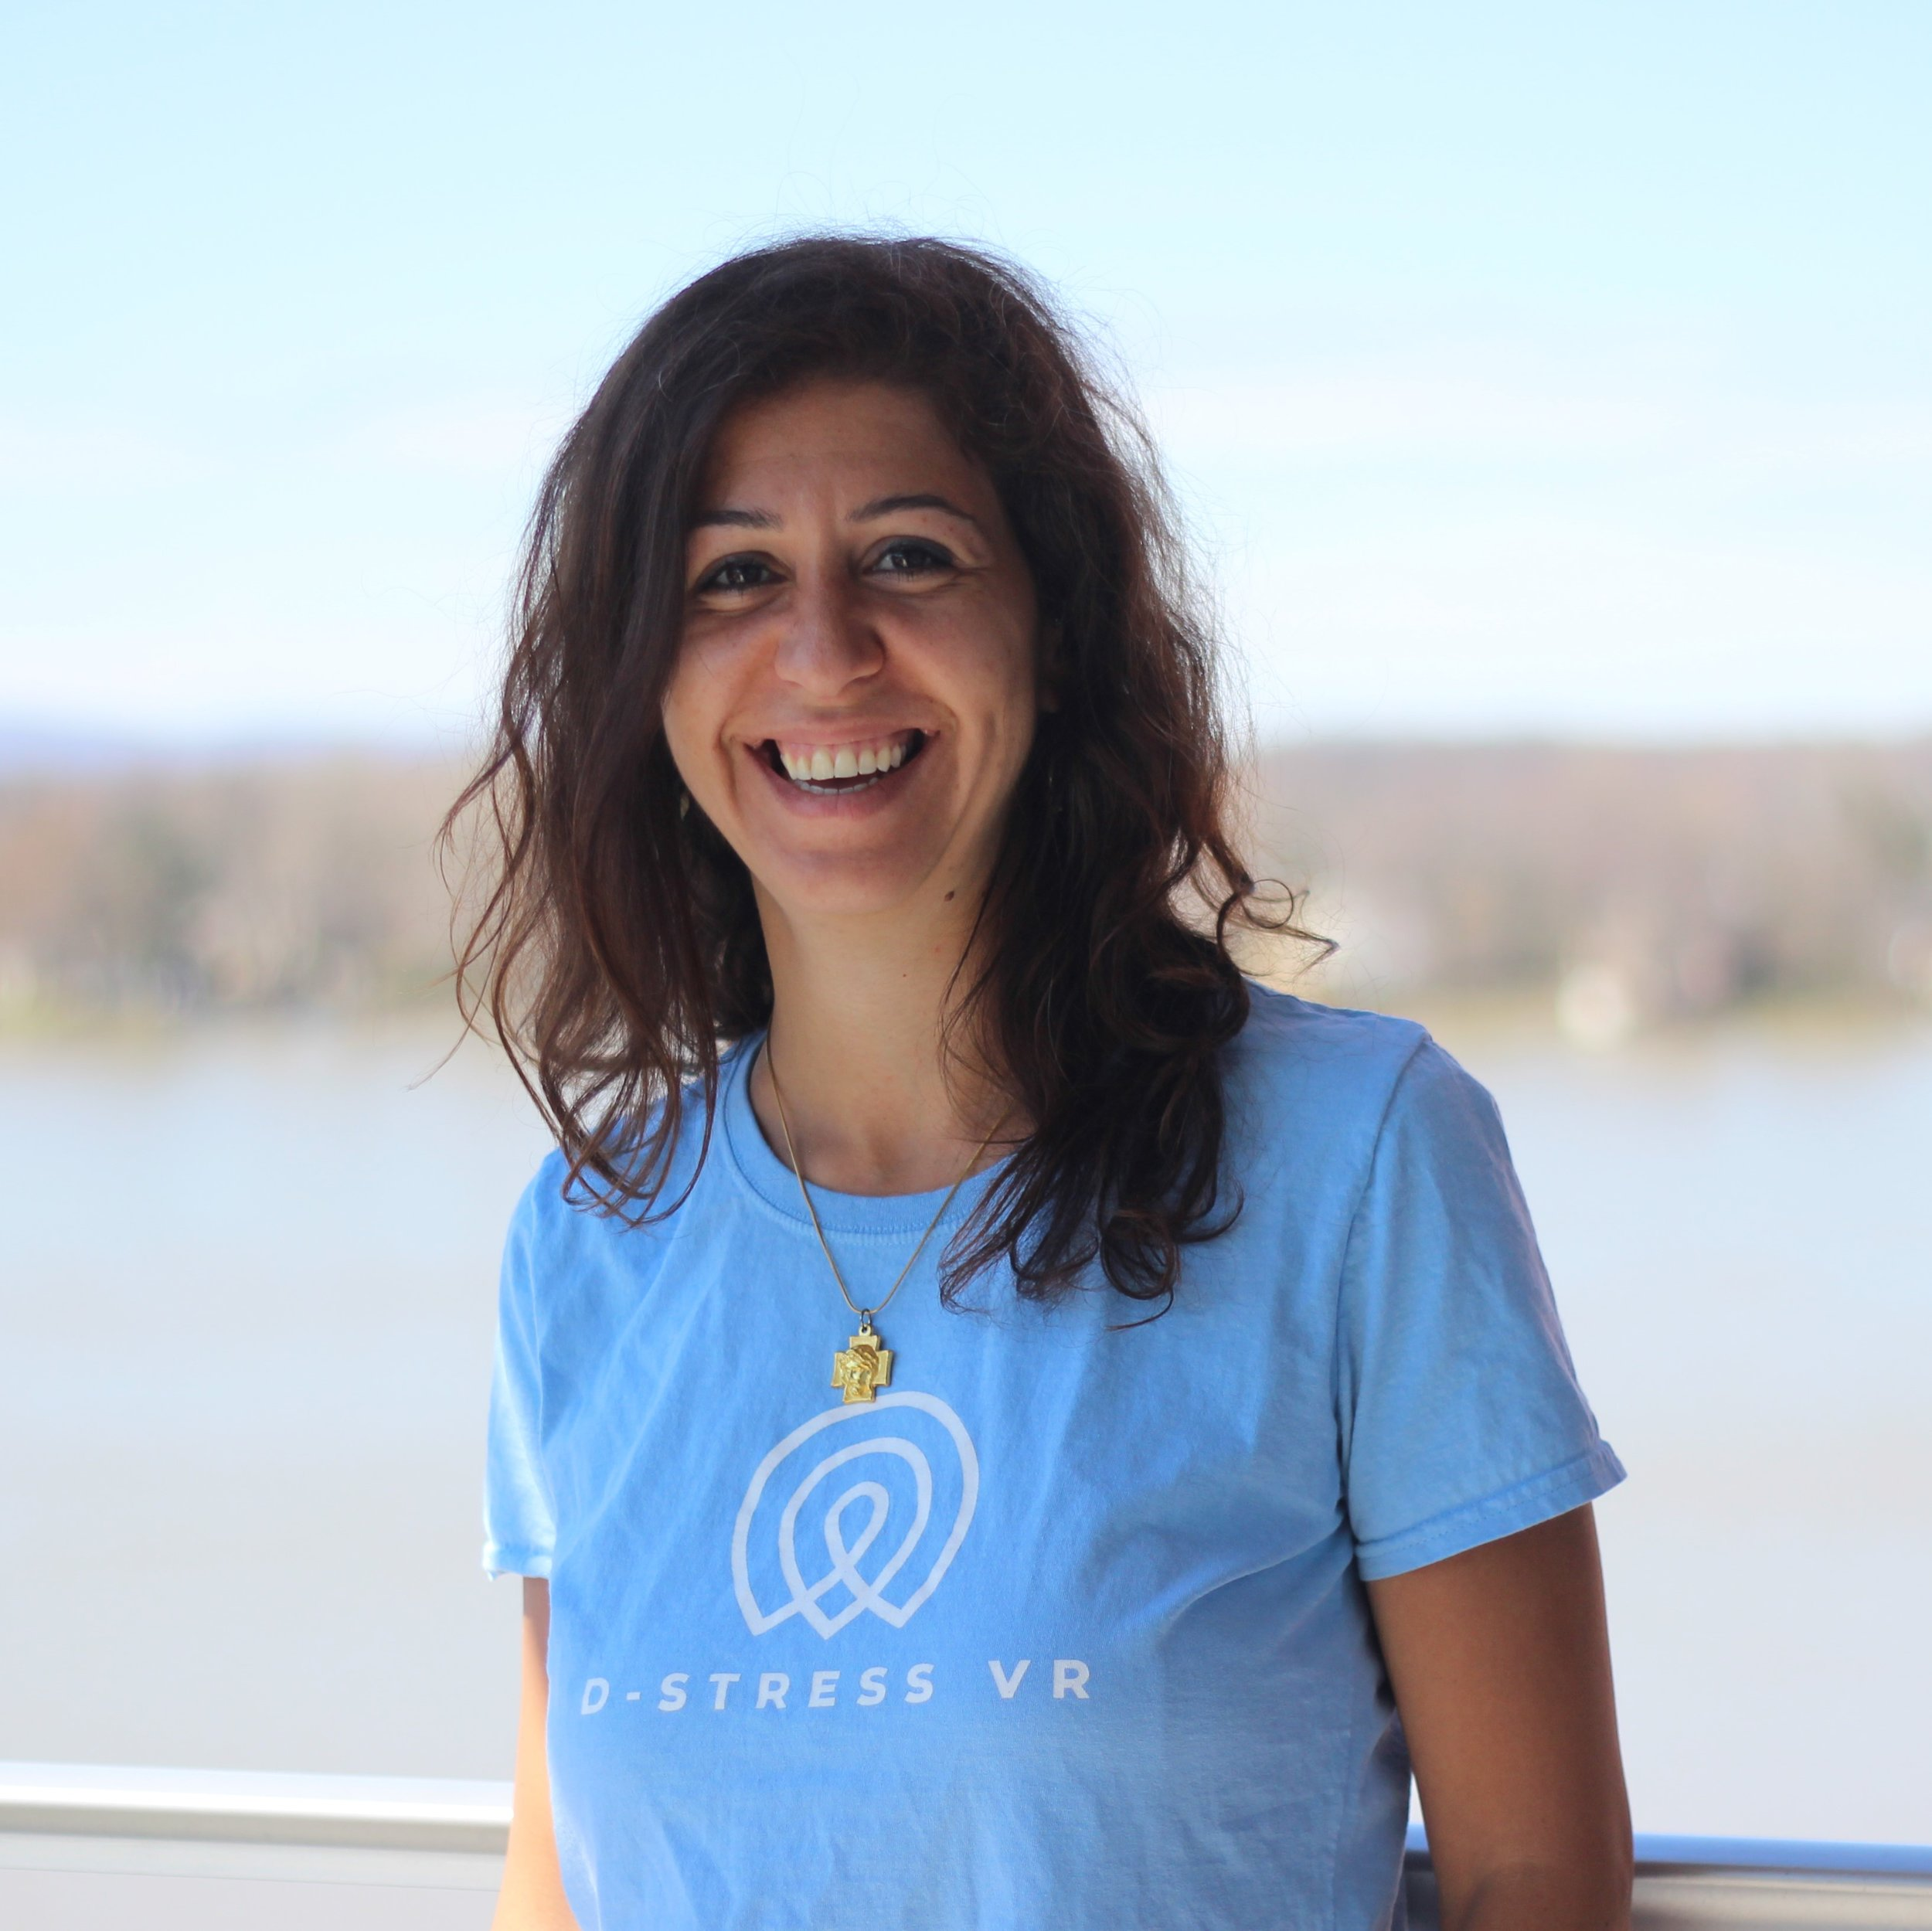 Narimane Hajjar - D-STRESS VR COACHNarimane is an avid practitioner of meditation and yoga. She has travelled to India to learn Hatha Yoga techniques and practices Vipassana meditation. She is passionate about mindfulness and will teach our participants techniques to calm their mind and get maximum benefits of their VR experience.